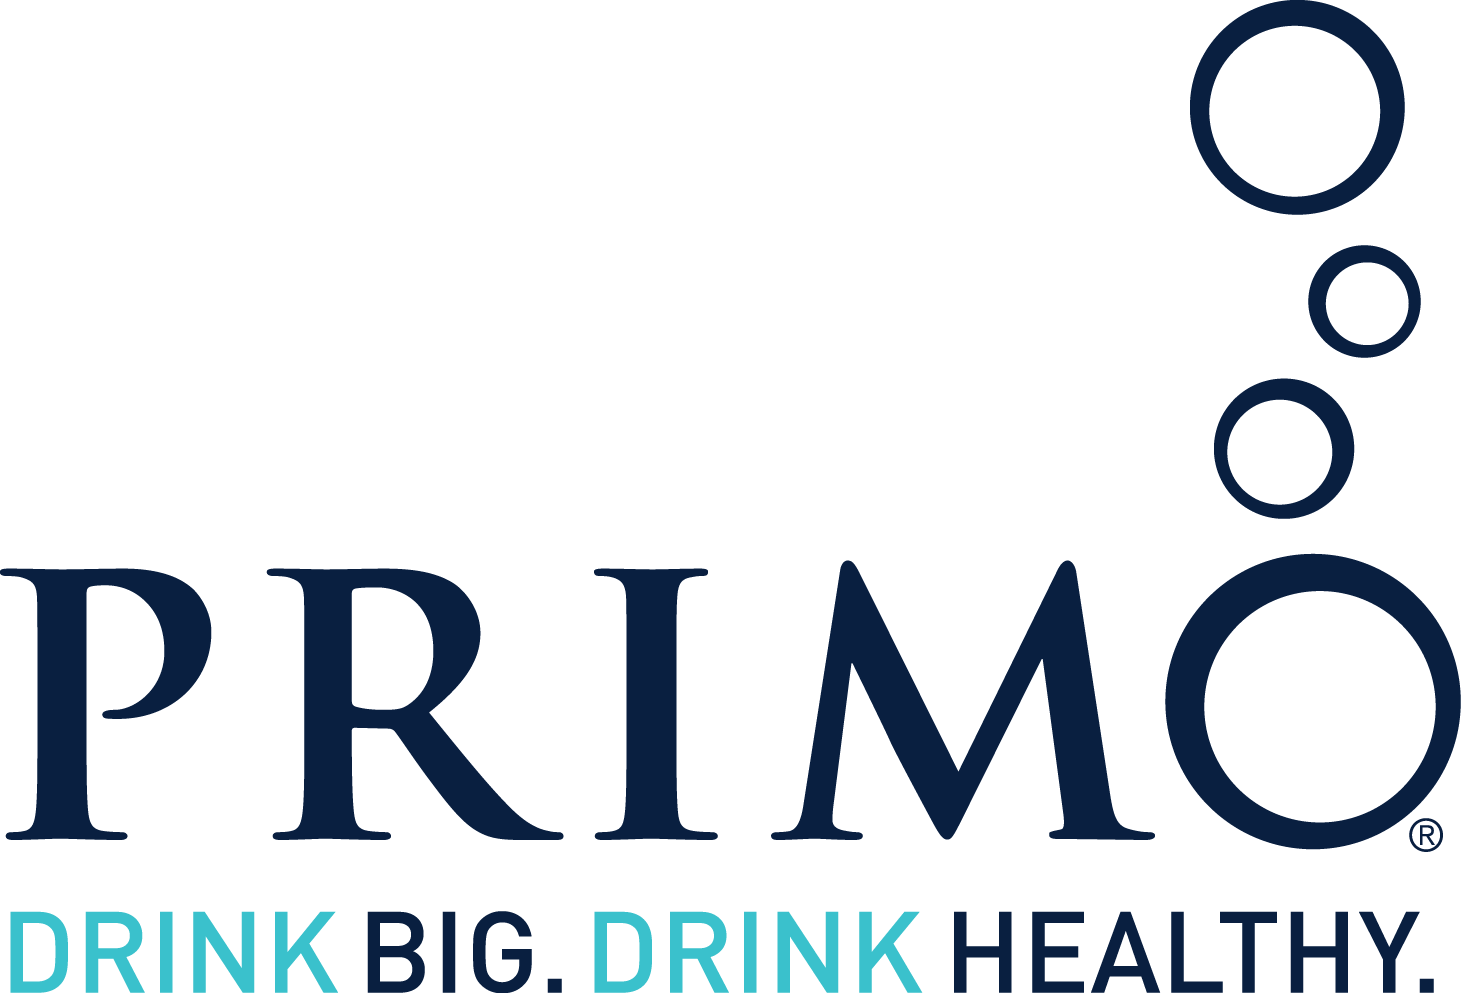 Primo. Drink Big. Drink Healthy.